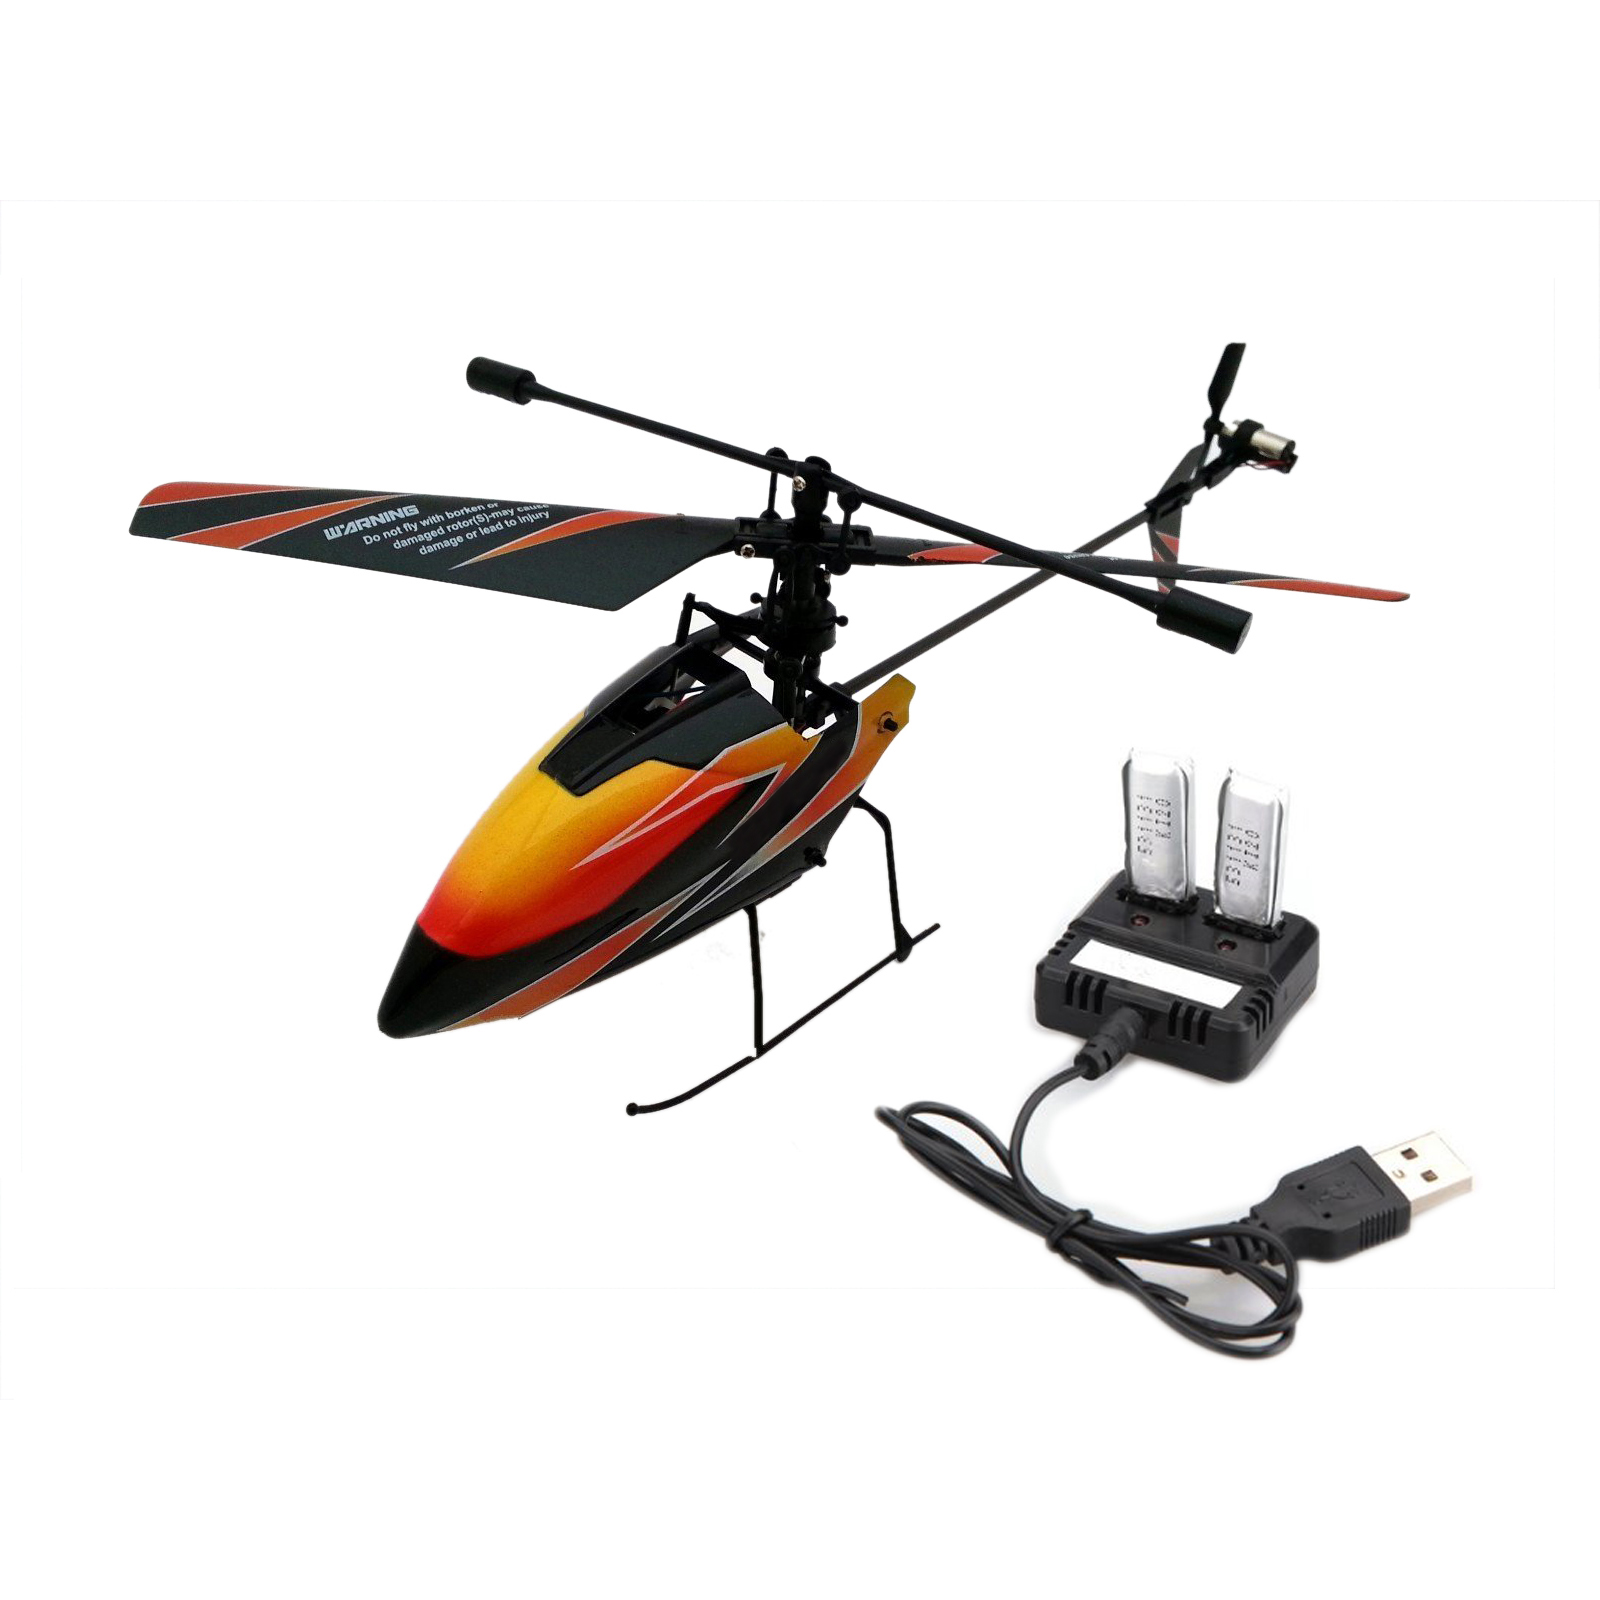 SODIAL WL 4Ch 2.4Ghz Mini Radio Single Propeller Rc Helicopter Gyro V911 Rtf Outdoor